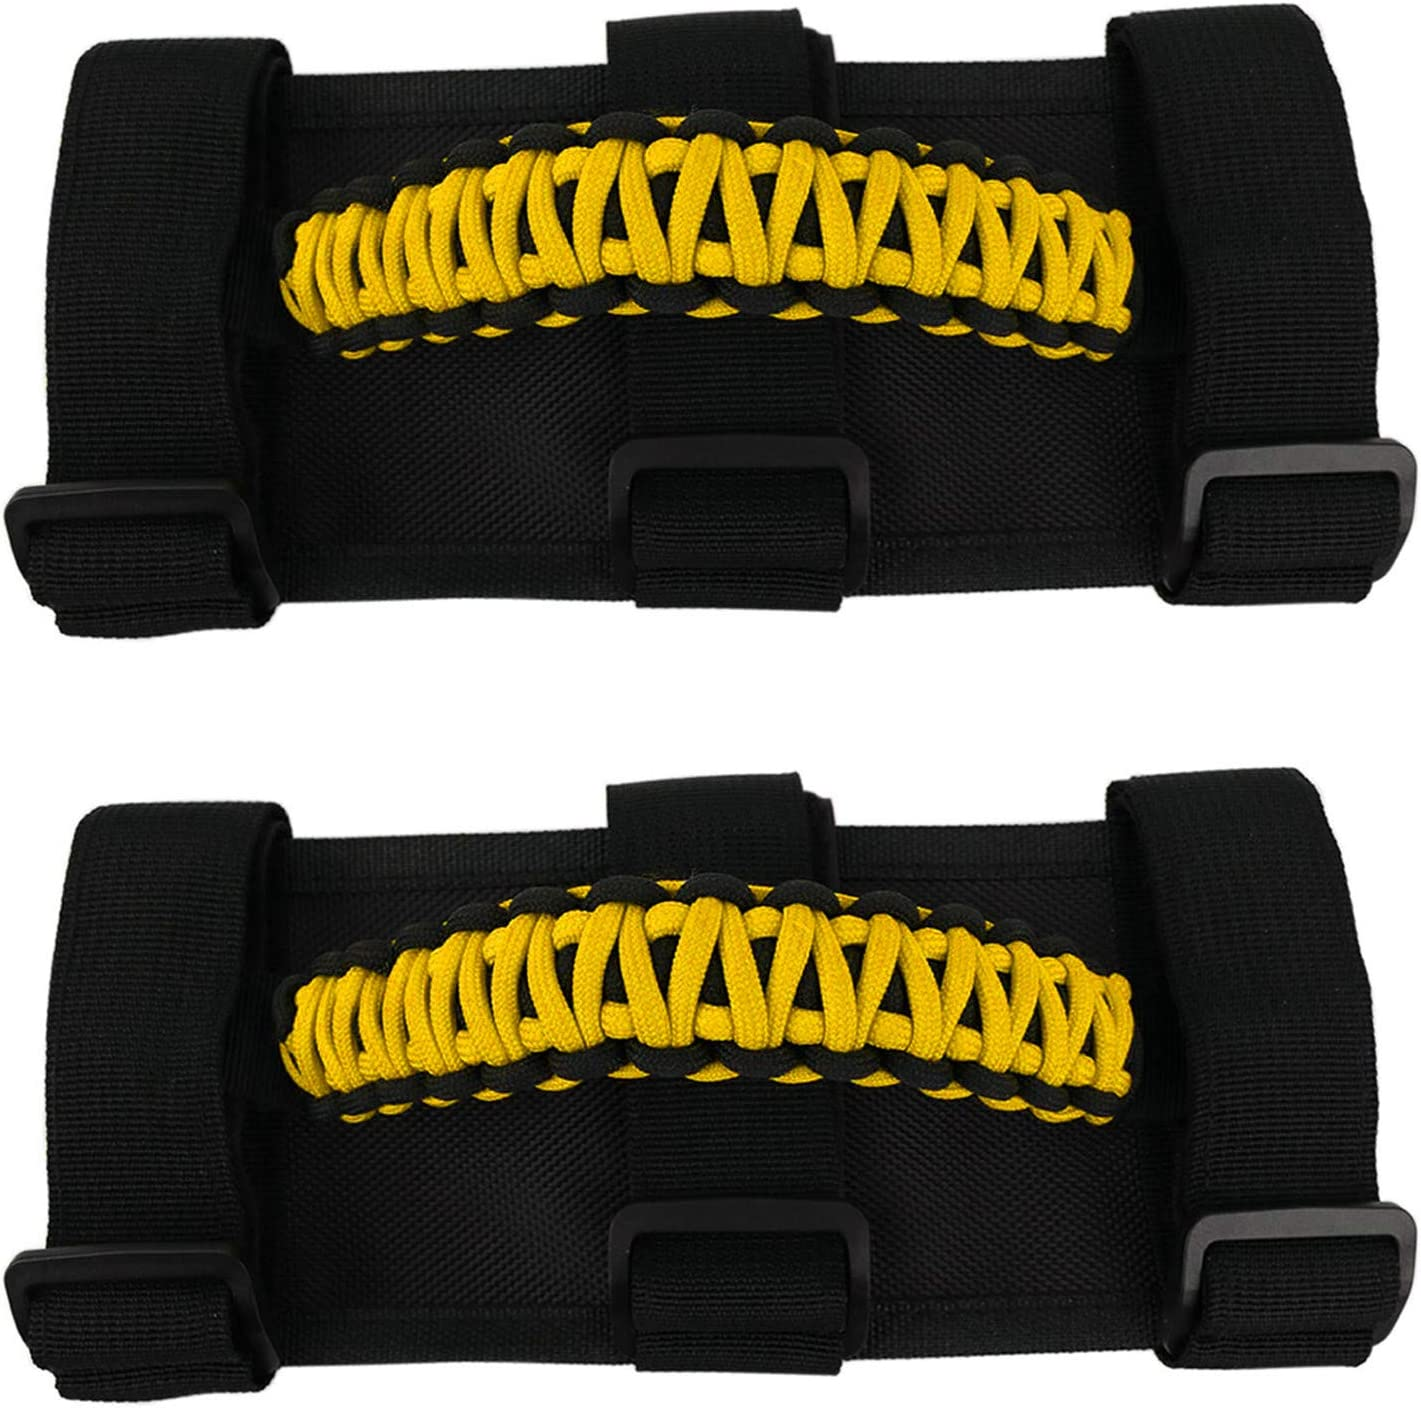 Jade Onlines In a popularity 2 Pcs Roll Bar Paracord San Diego Mall Grab f Handles Grip